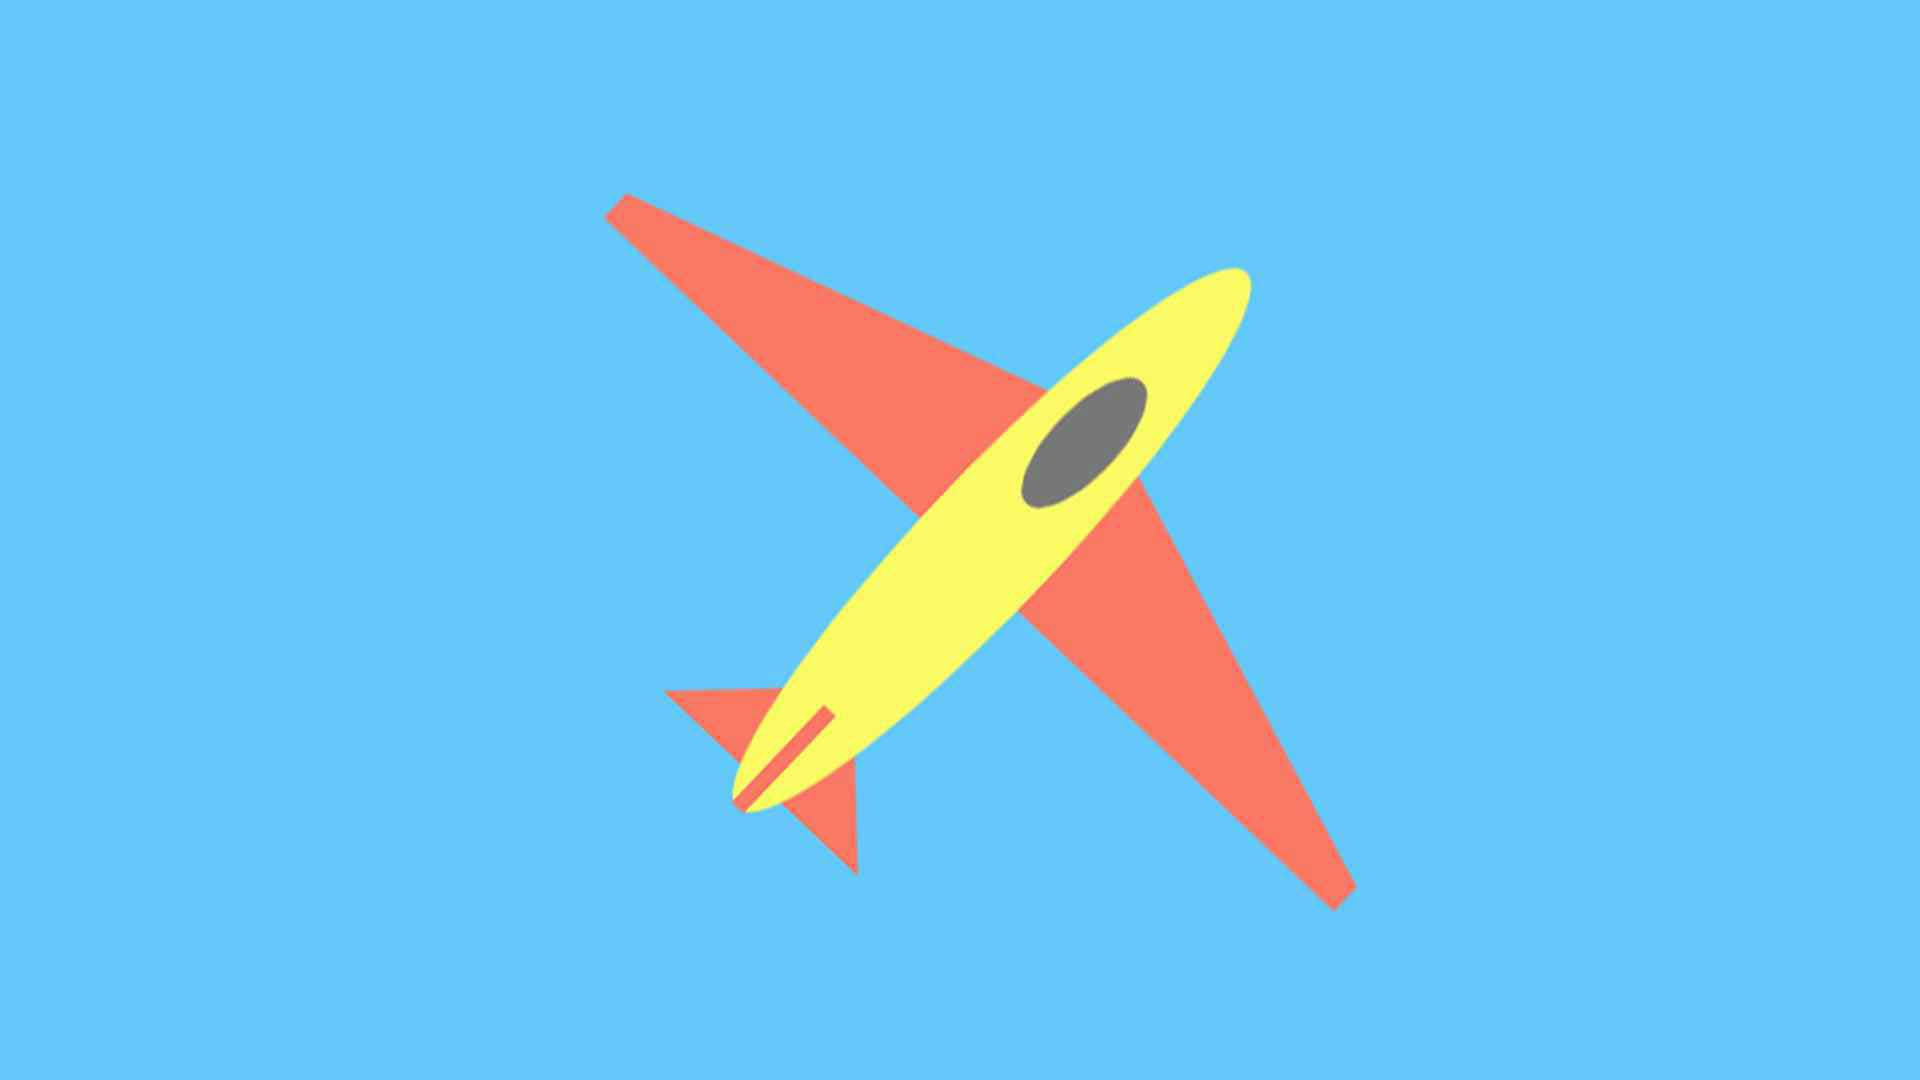 3_code-to-draw-airplane